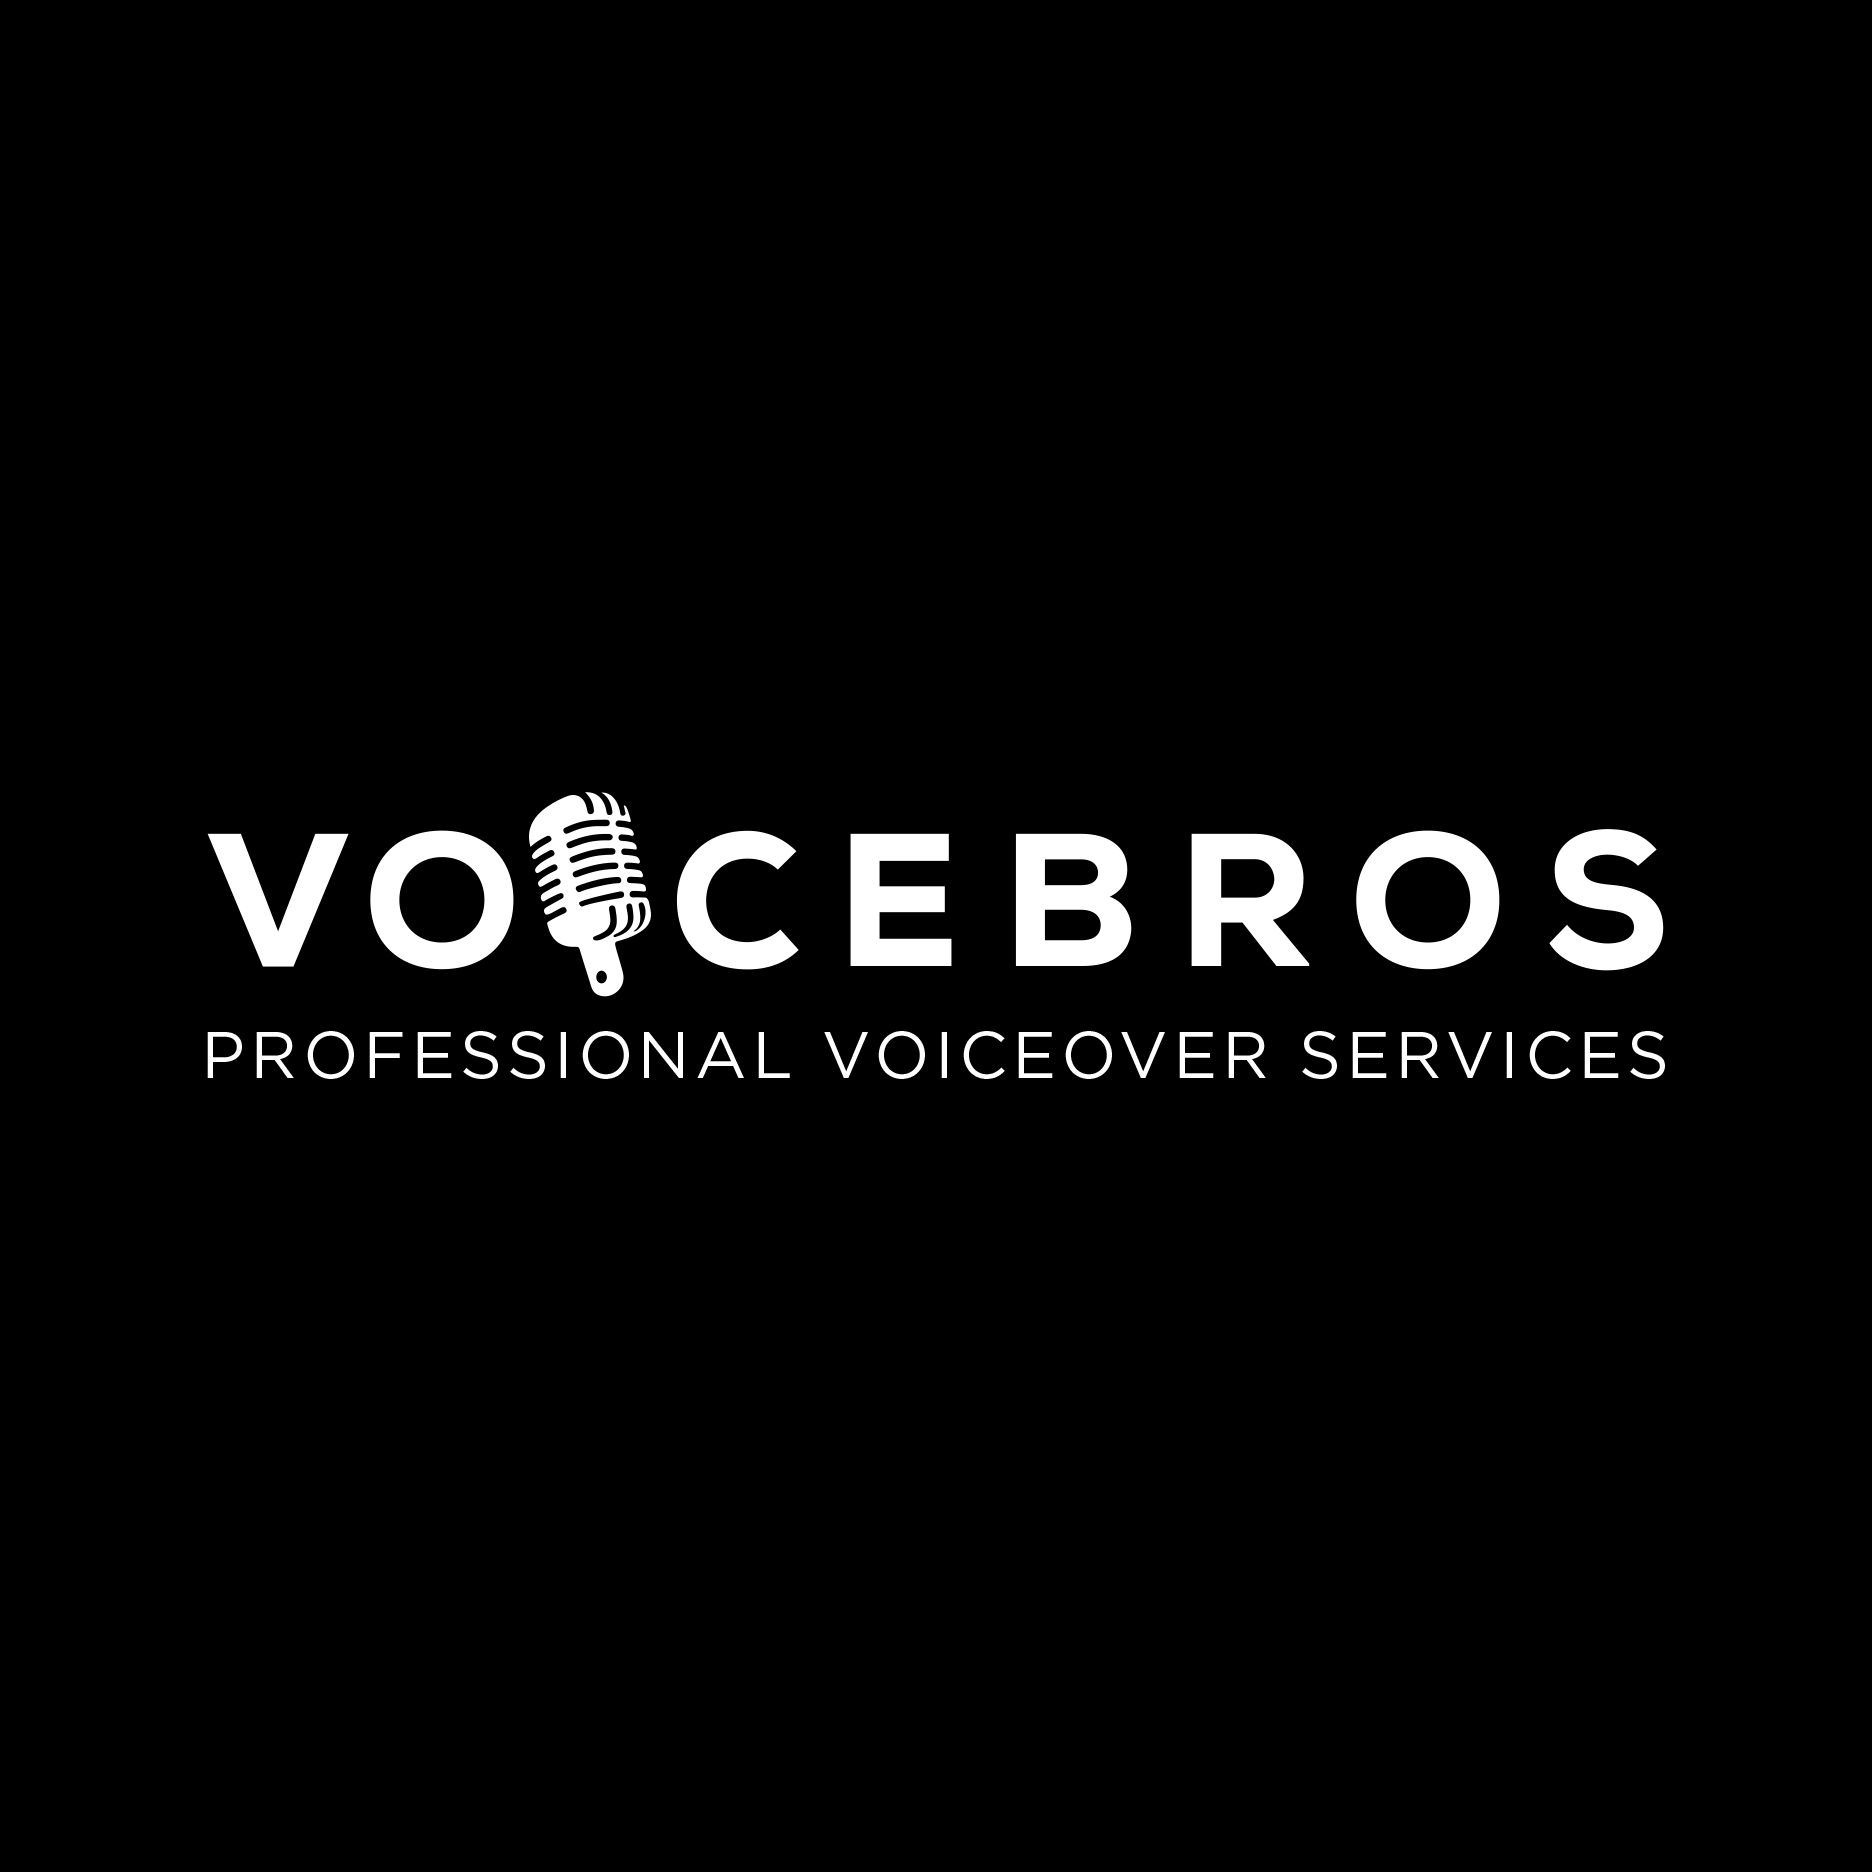 Angie LaBarthe is a voice over actor